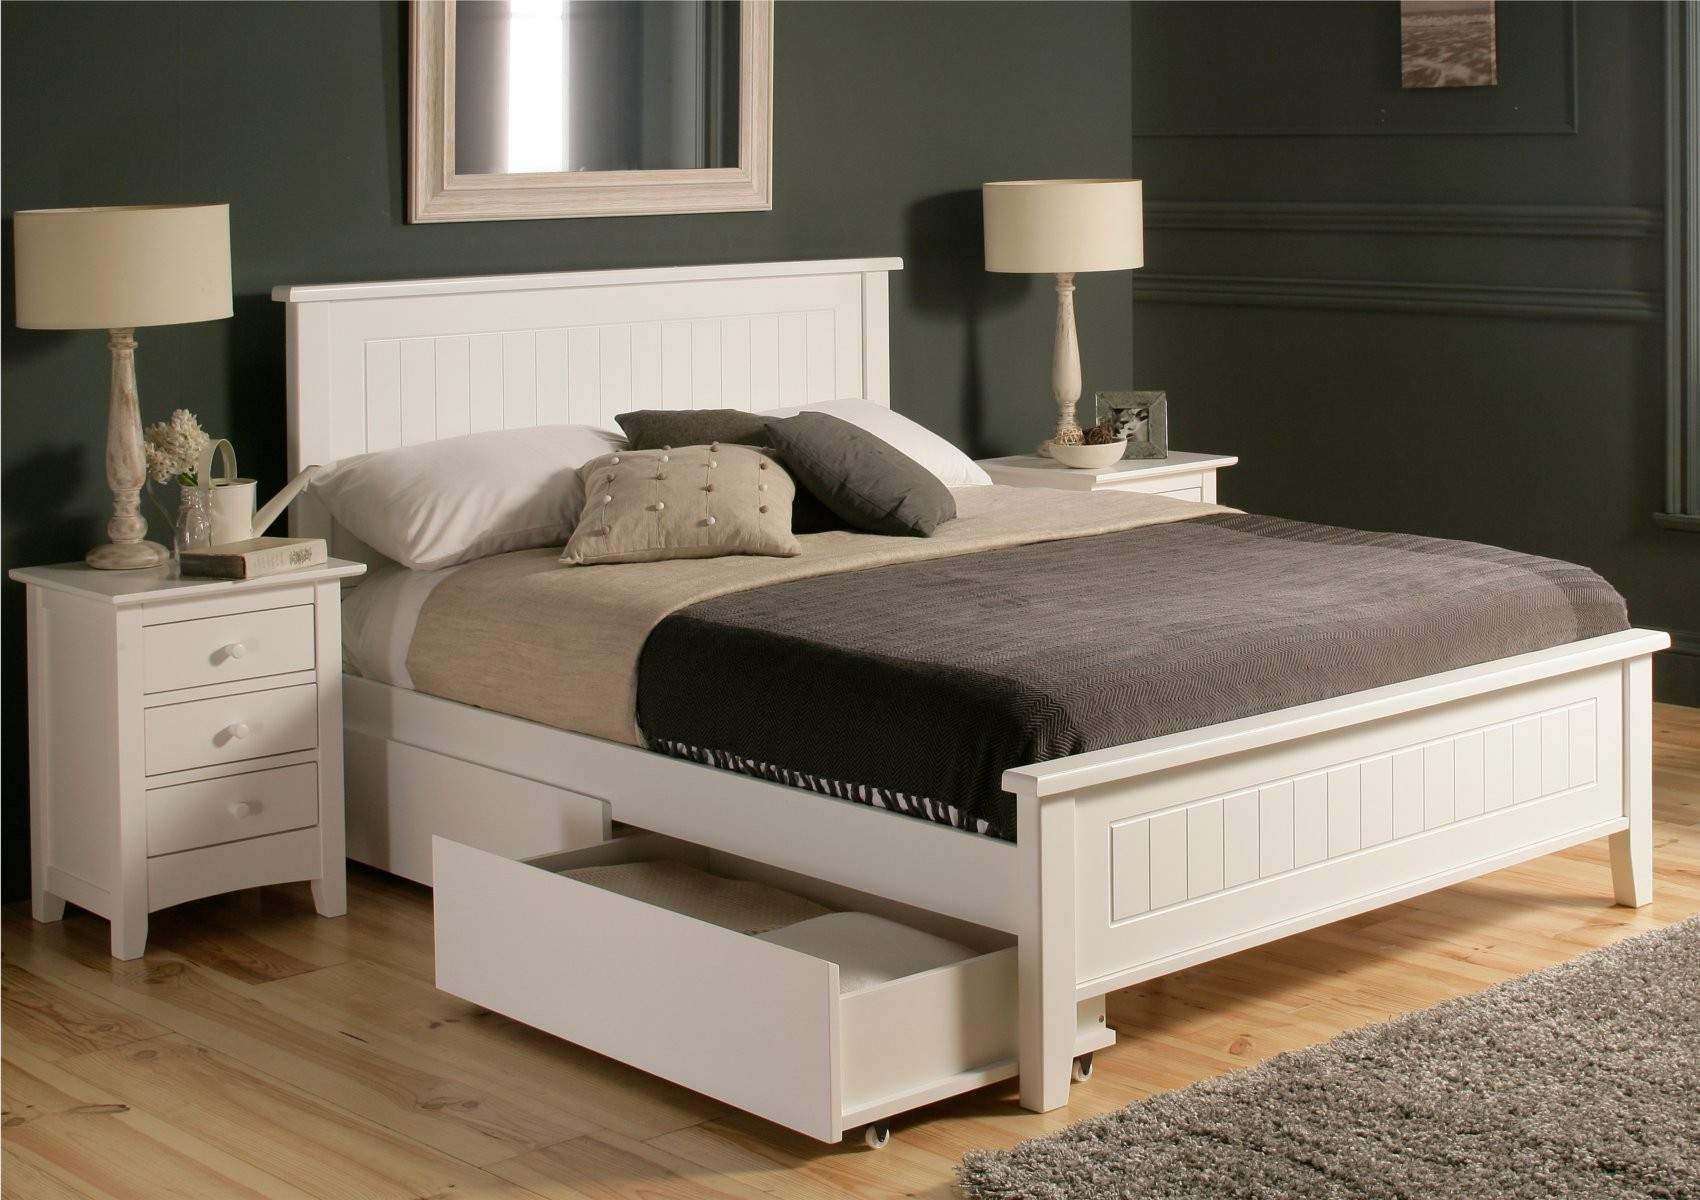 Bed furniture with drawers - Wooden White Bed With Drawers Underneath And Small Cabinet With Standing Lamp Grey Fur Rug